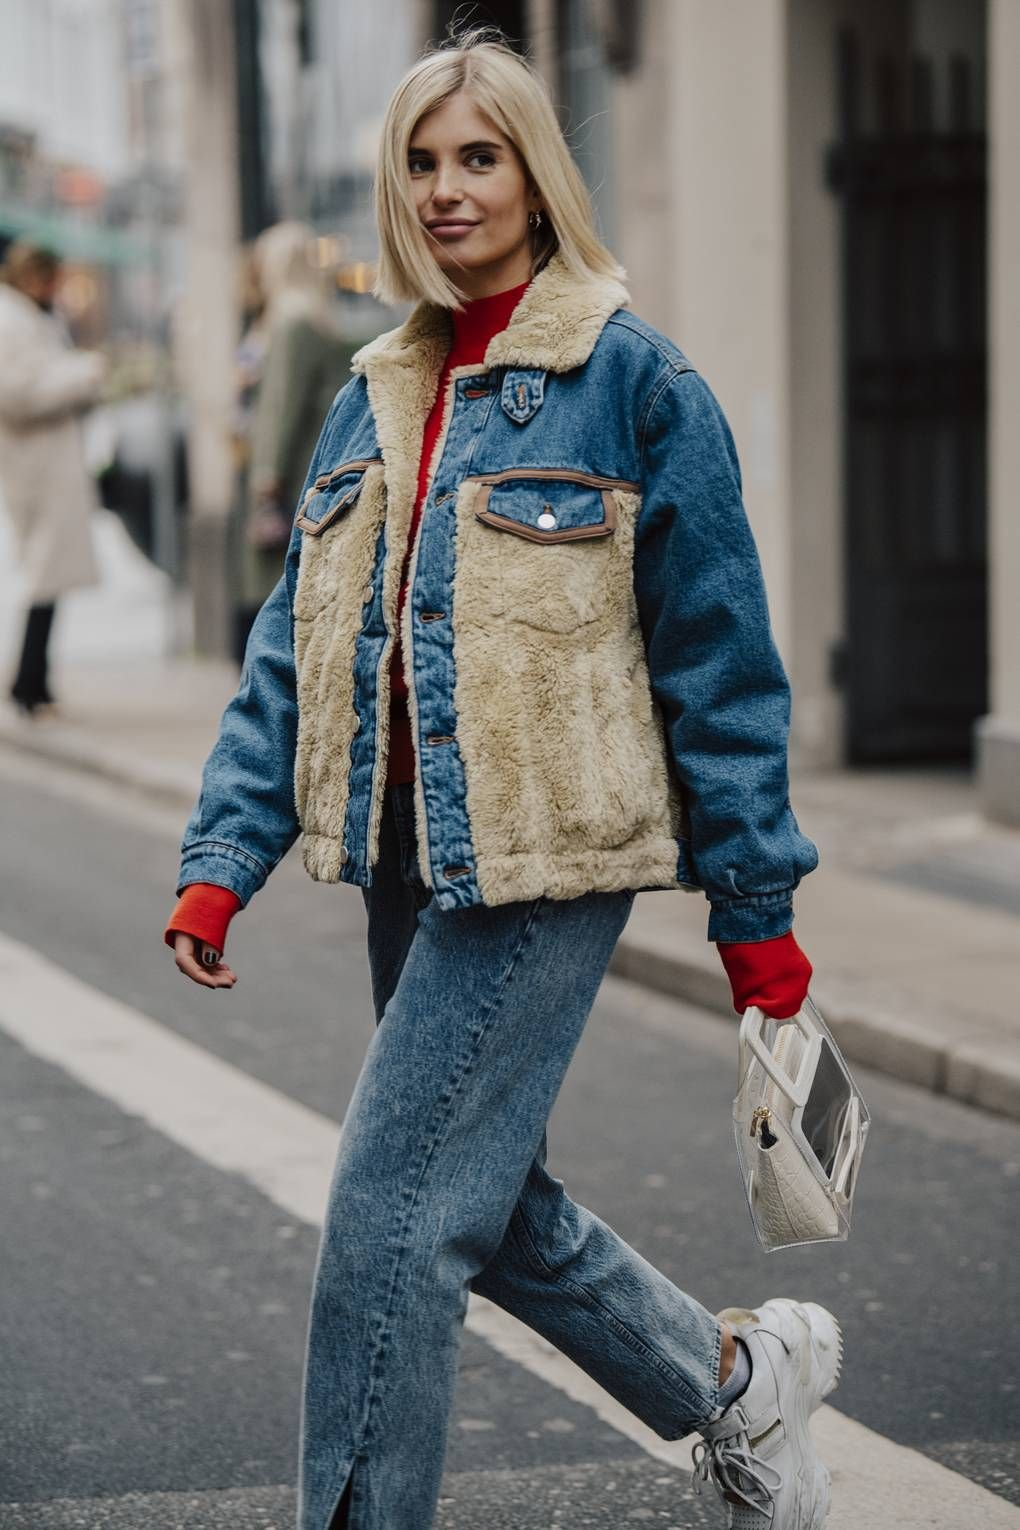 The Best Street Style From Copenhagen Fashion Week | Cool